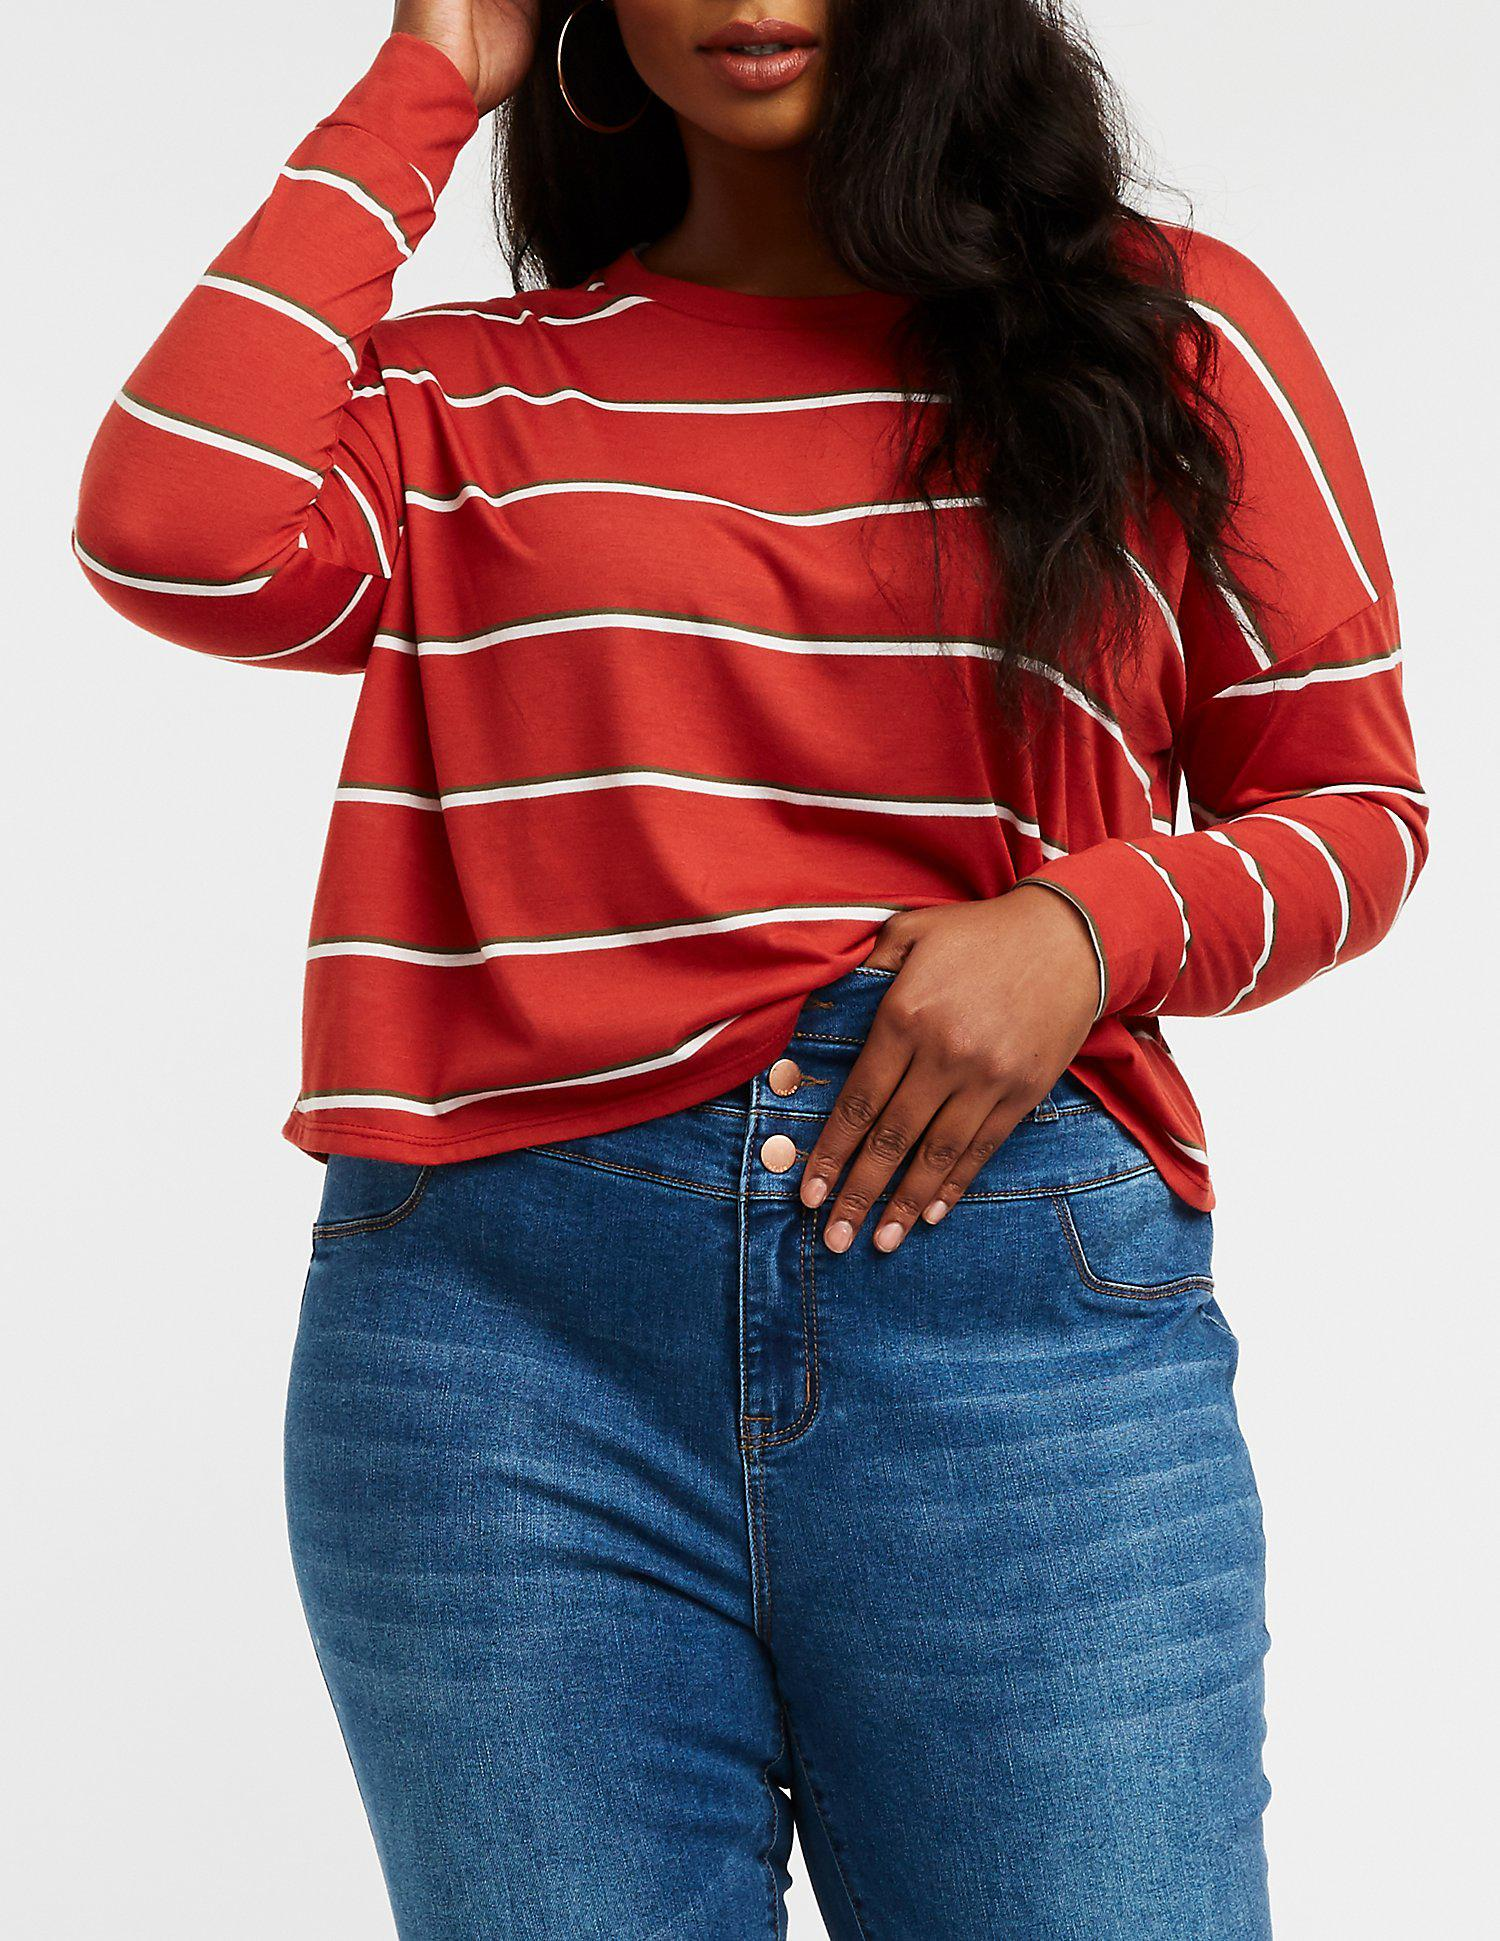 b1a8f5e6d26 Lyst - Charlotte Russe Plus Size Striped Crop Top in Red